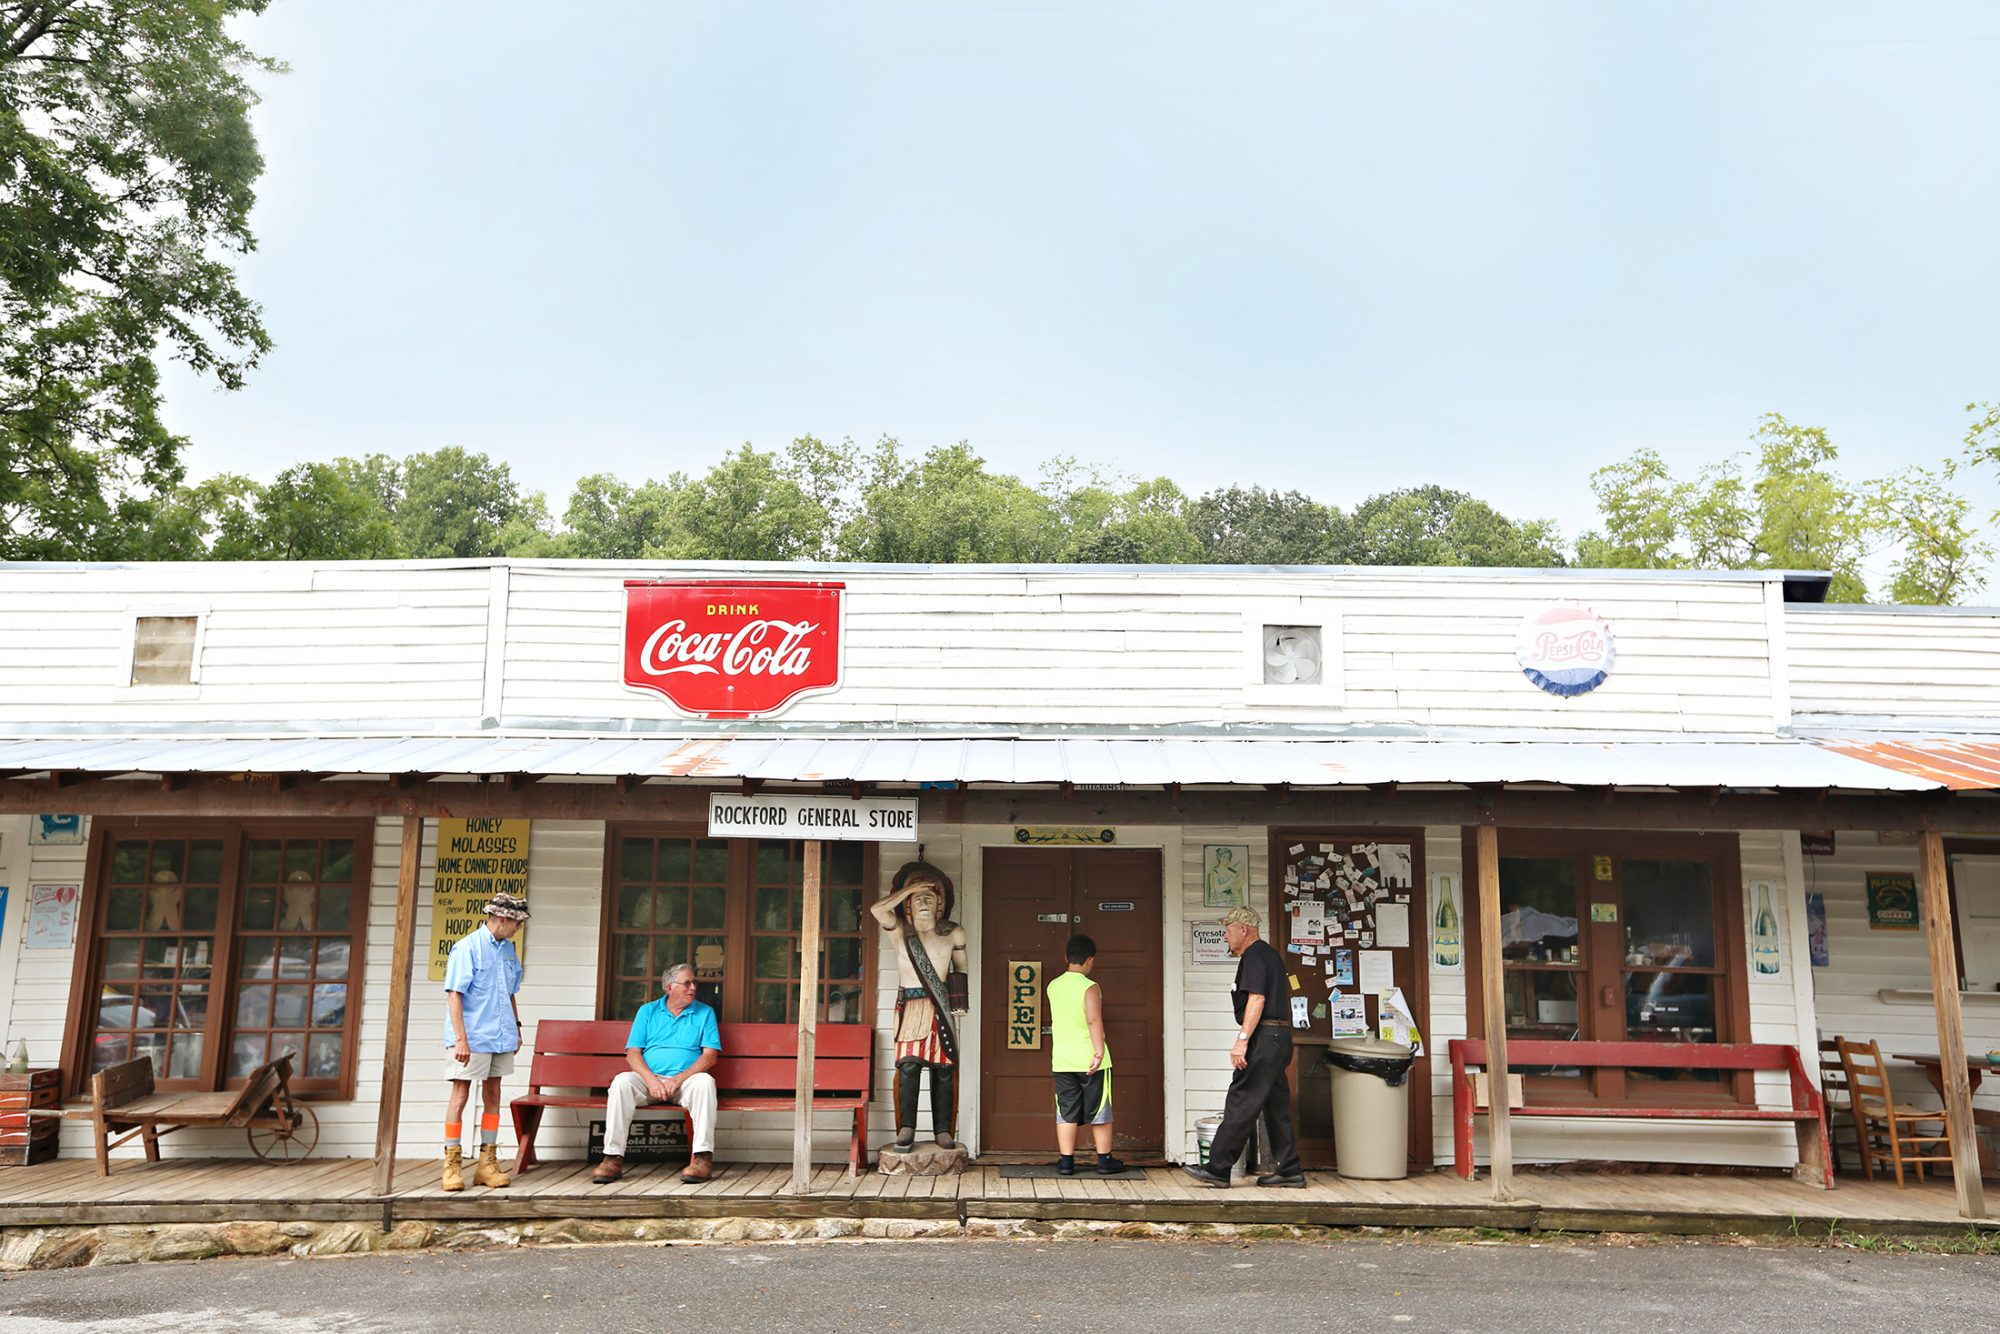 Rockford General Store in Dobson, North Carolina